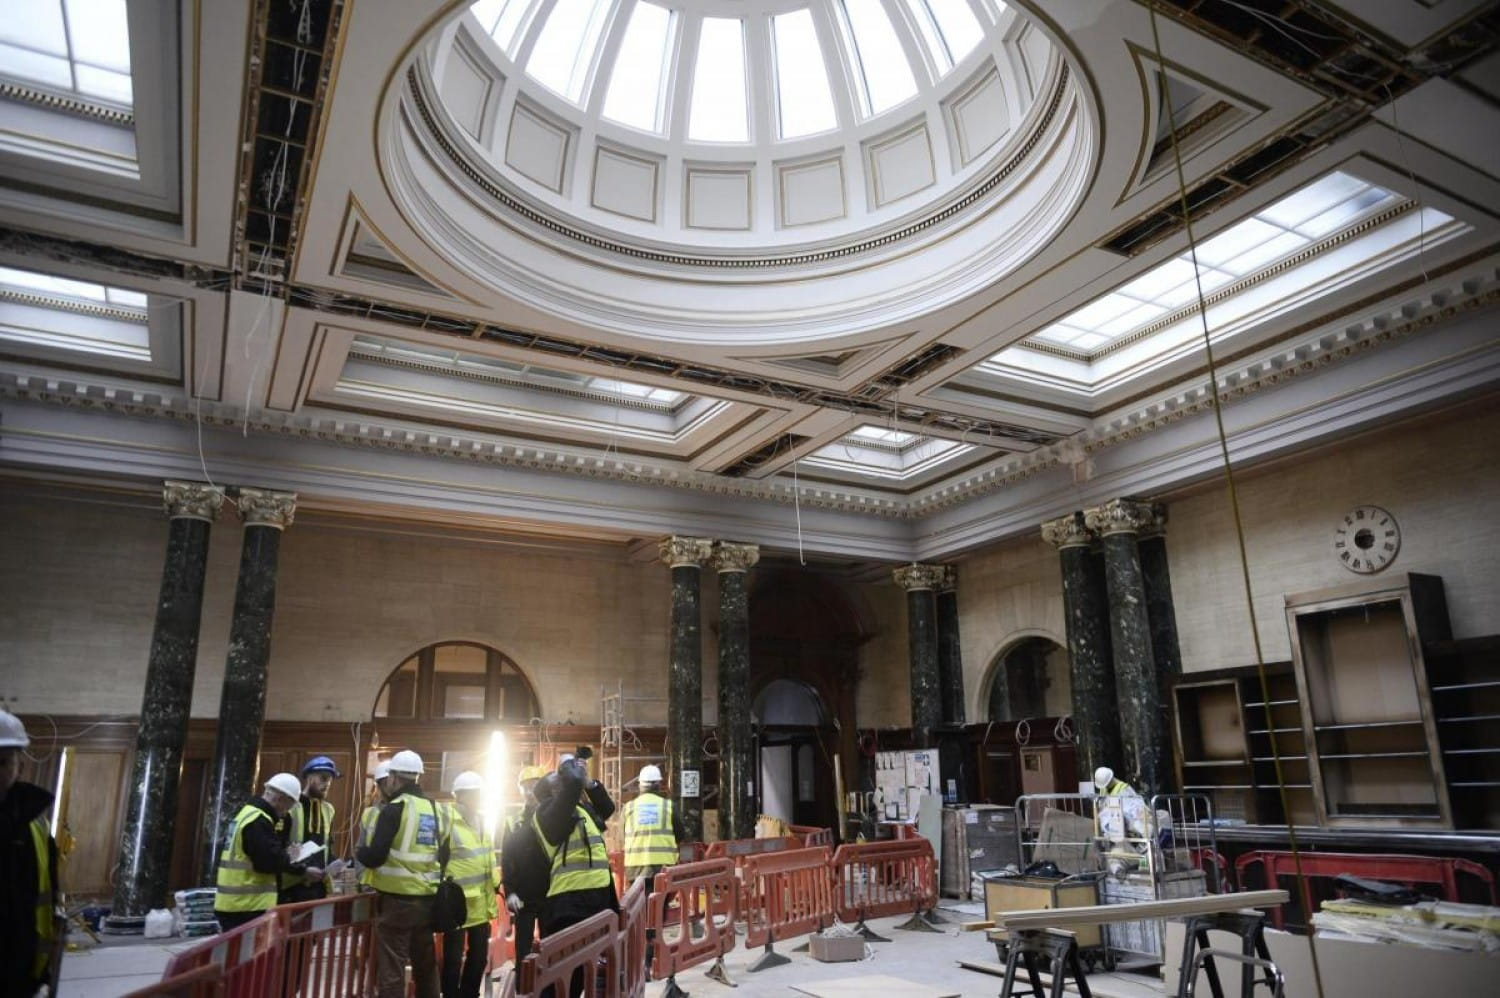 Work on transforming the old Post Office into an upmarket eatery. Herald and Times